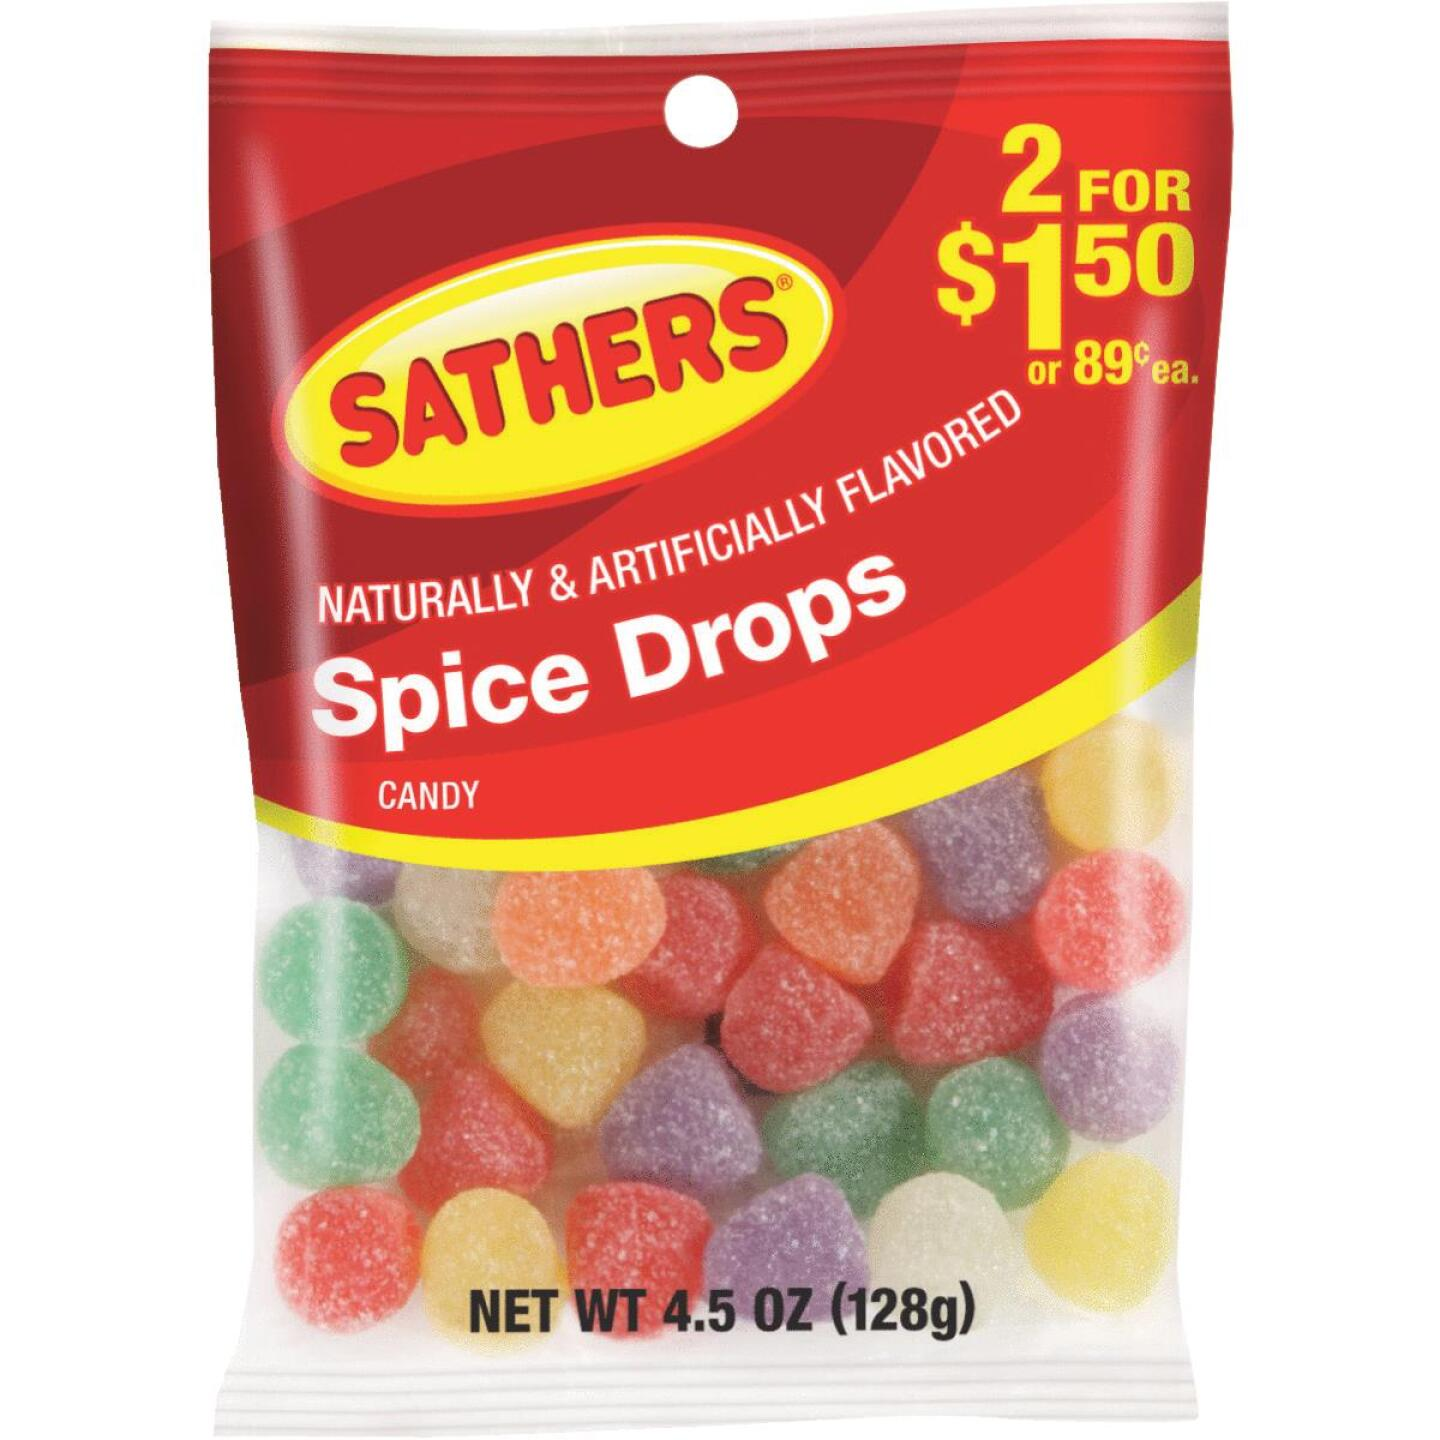 Sathers 4.5 Oz. Spice Drops Image 1